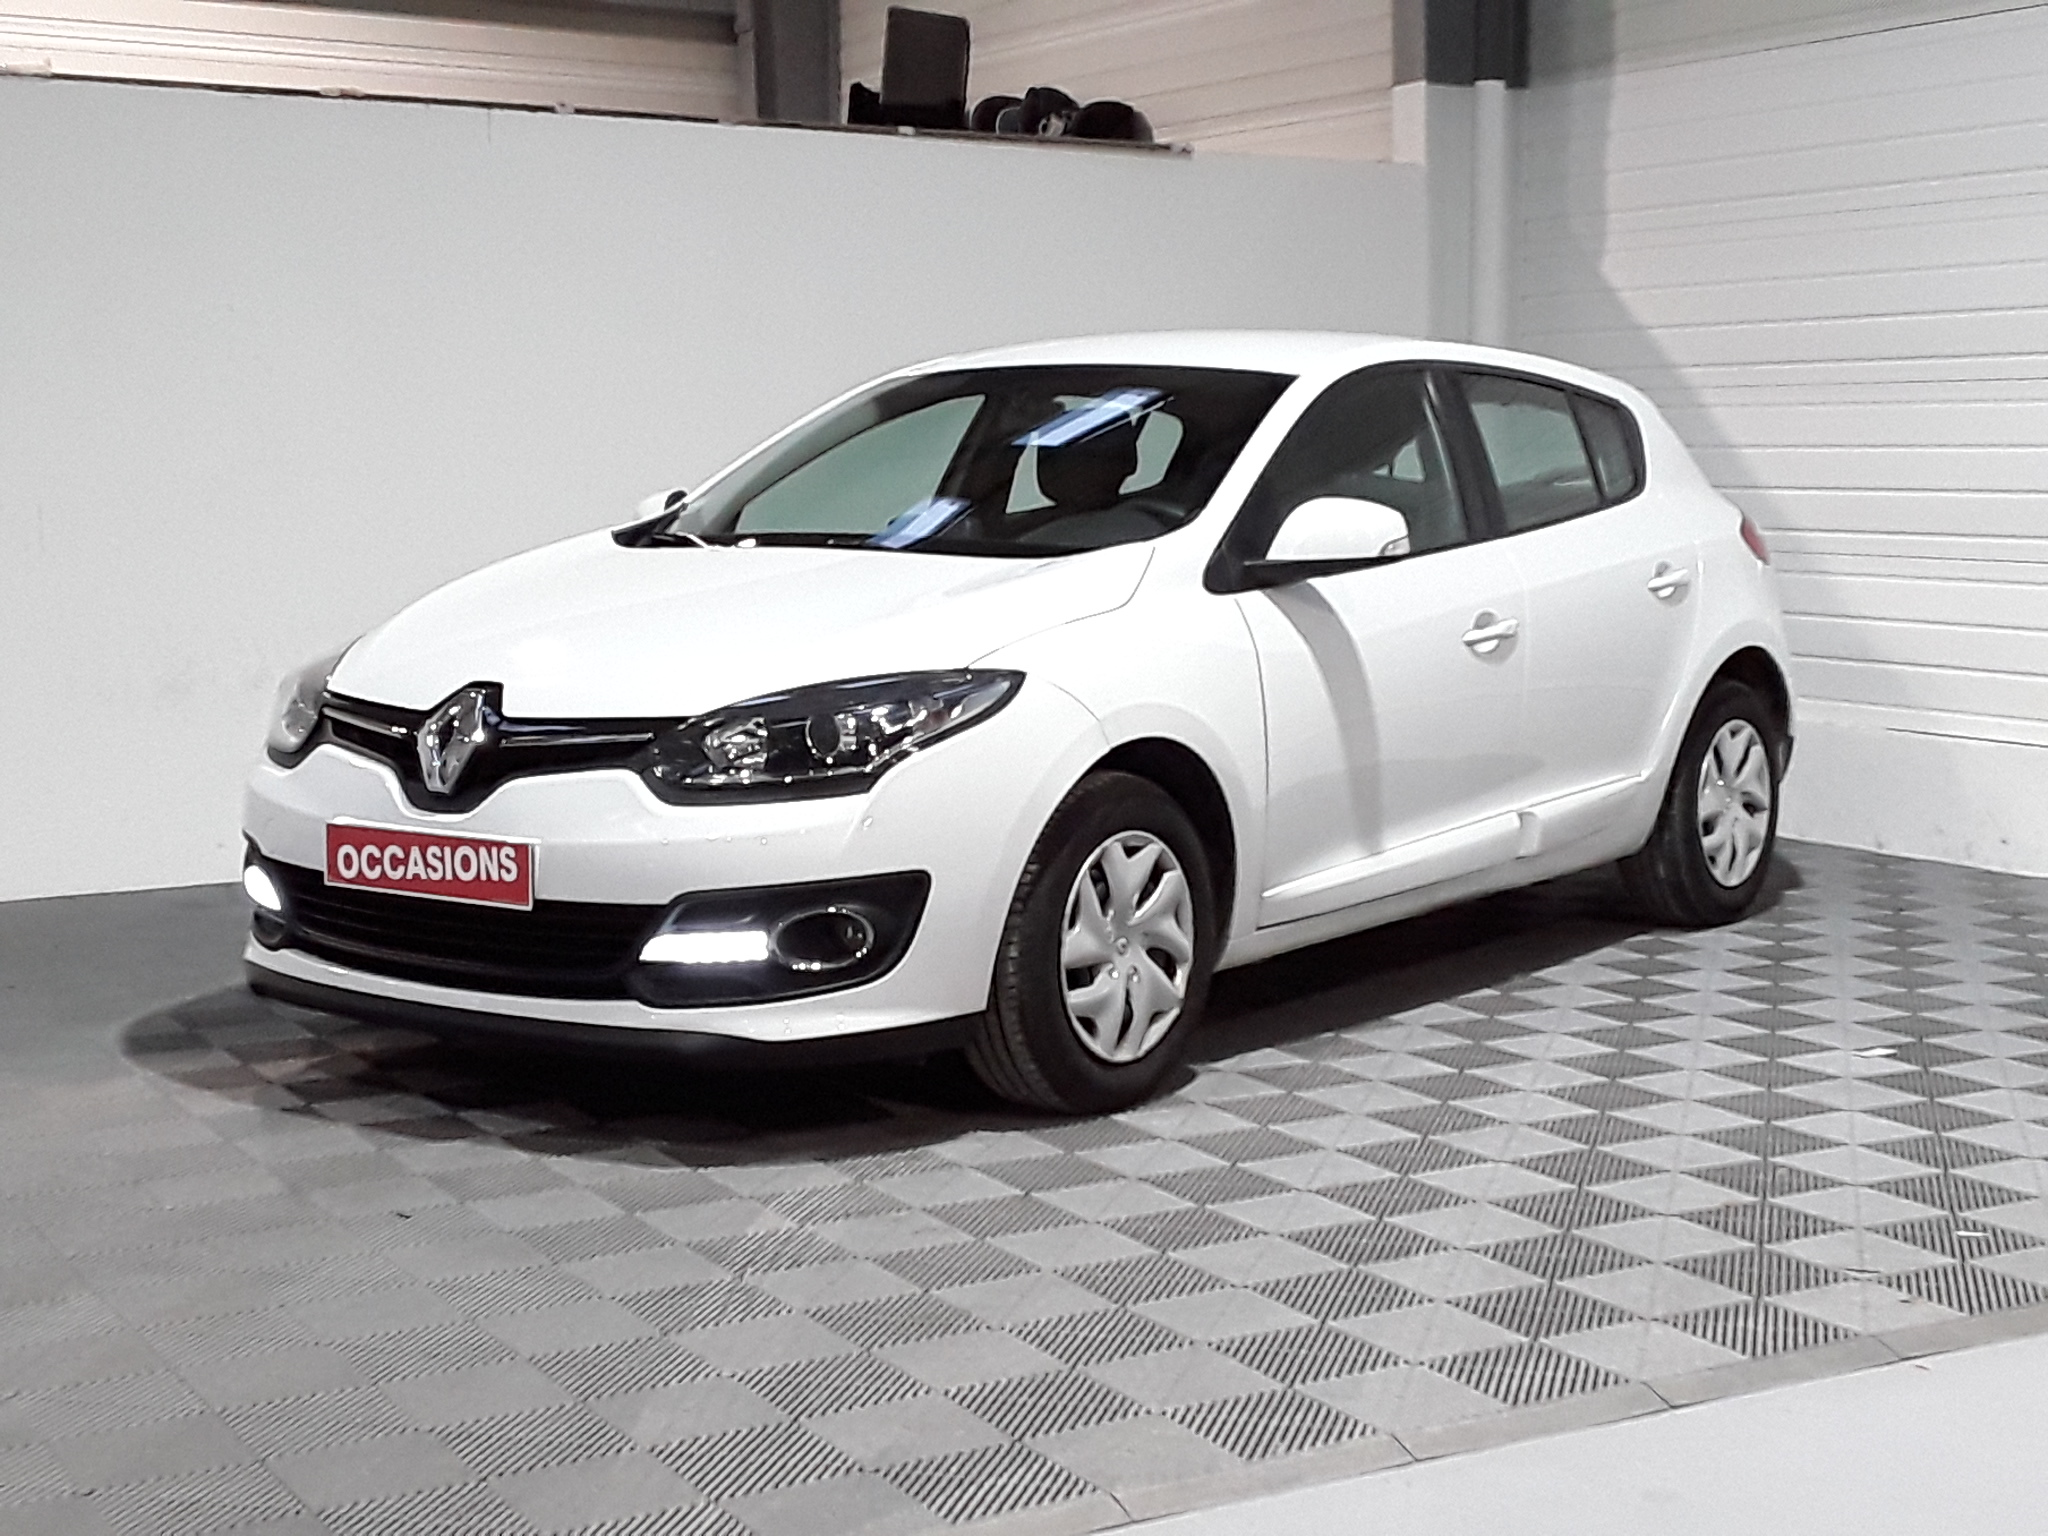 RENAULT MEGANE III SOCIETE 2016 à 7500 € - Photo n°1